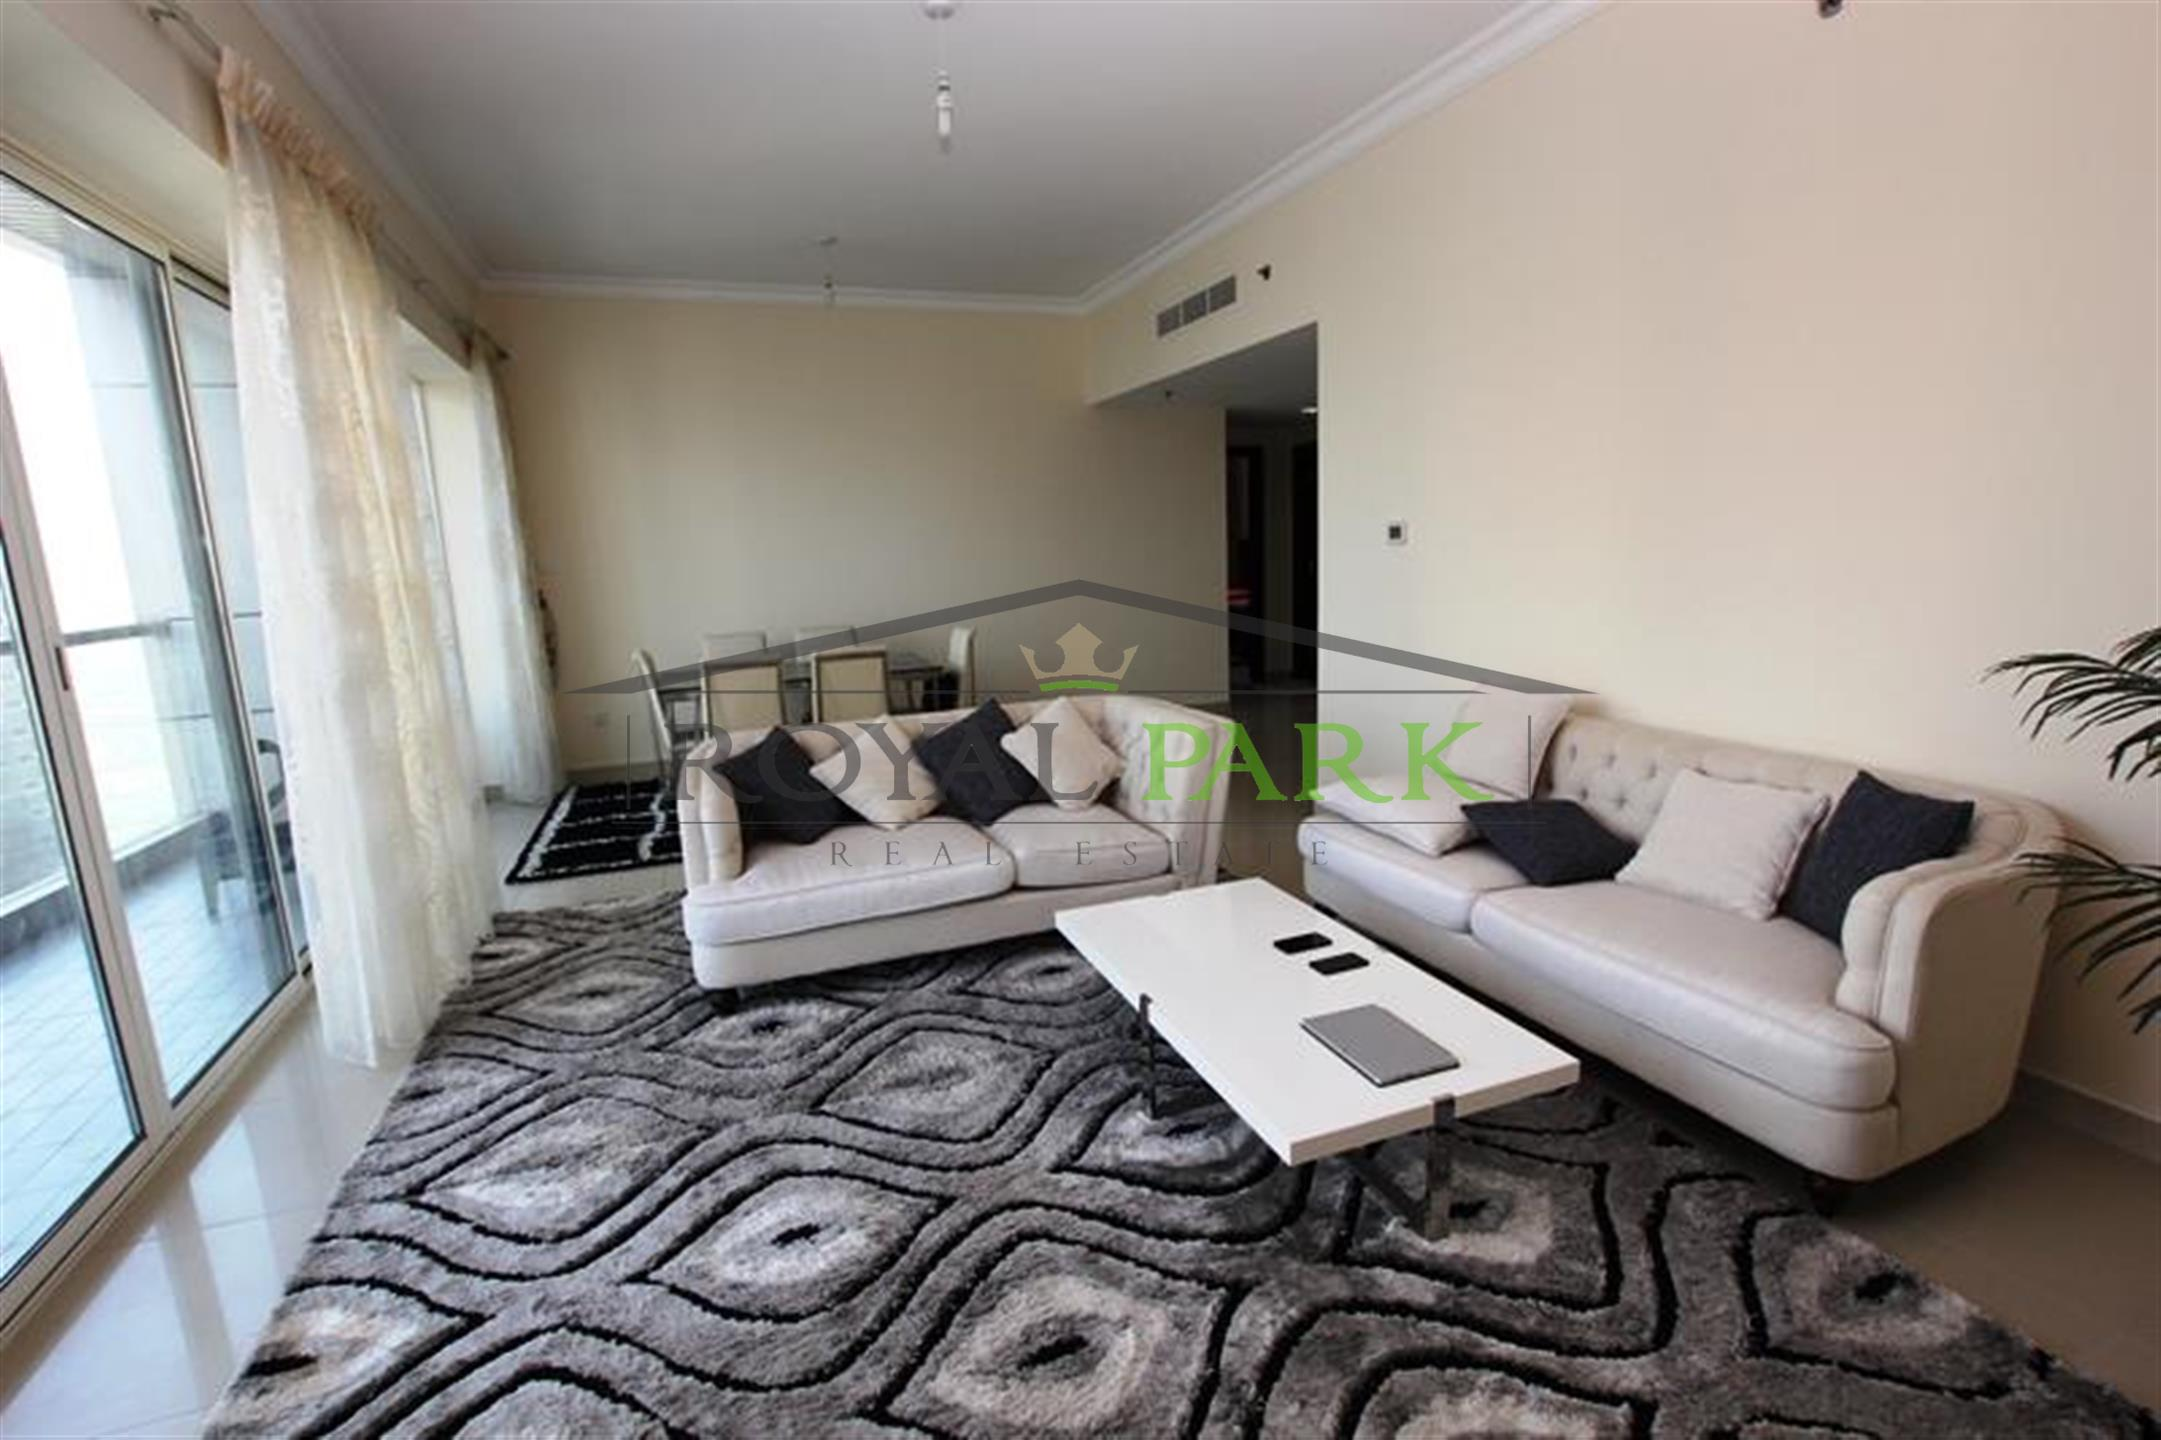 1,700 Sq.Ft. Furnished 2br+Balcony In V3 Tower, Jlt.